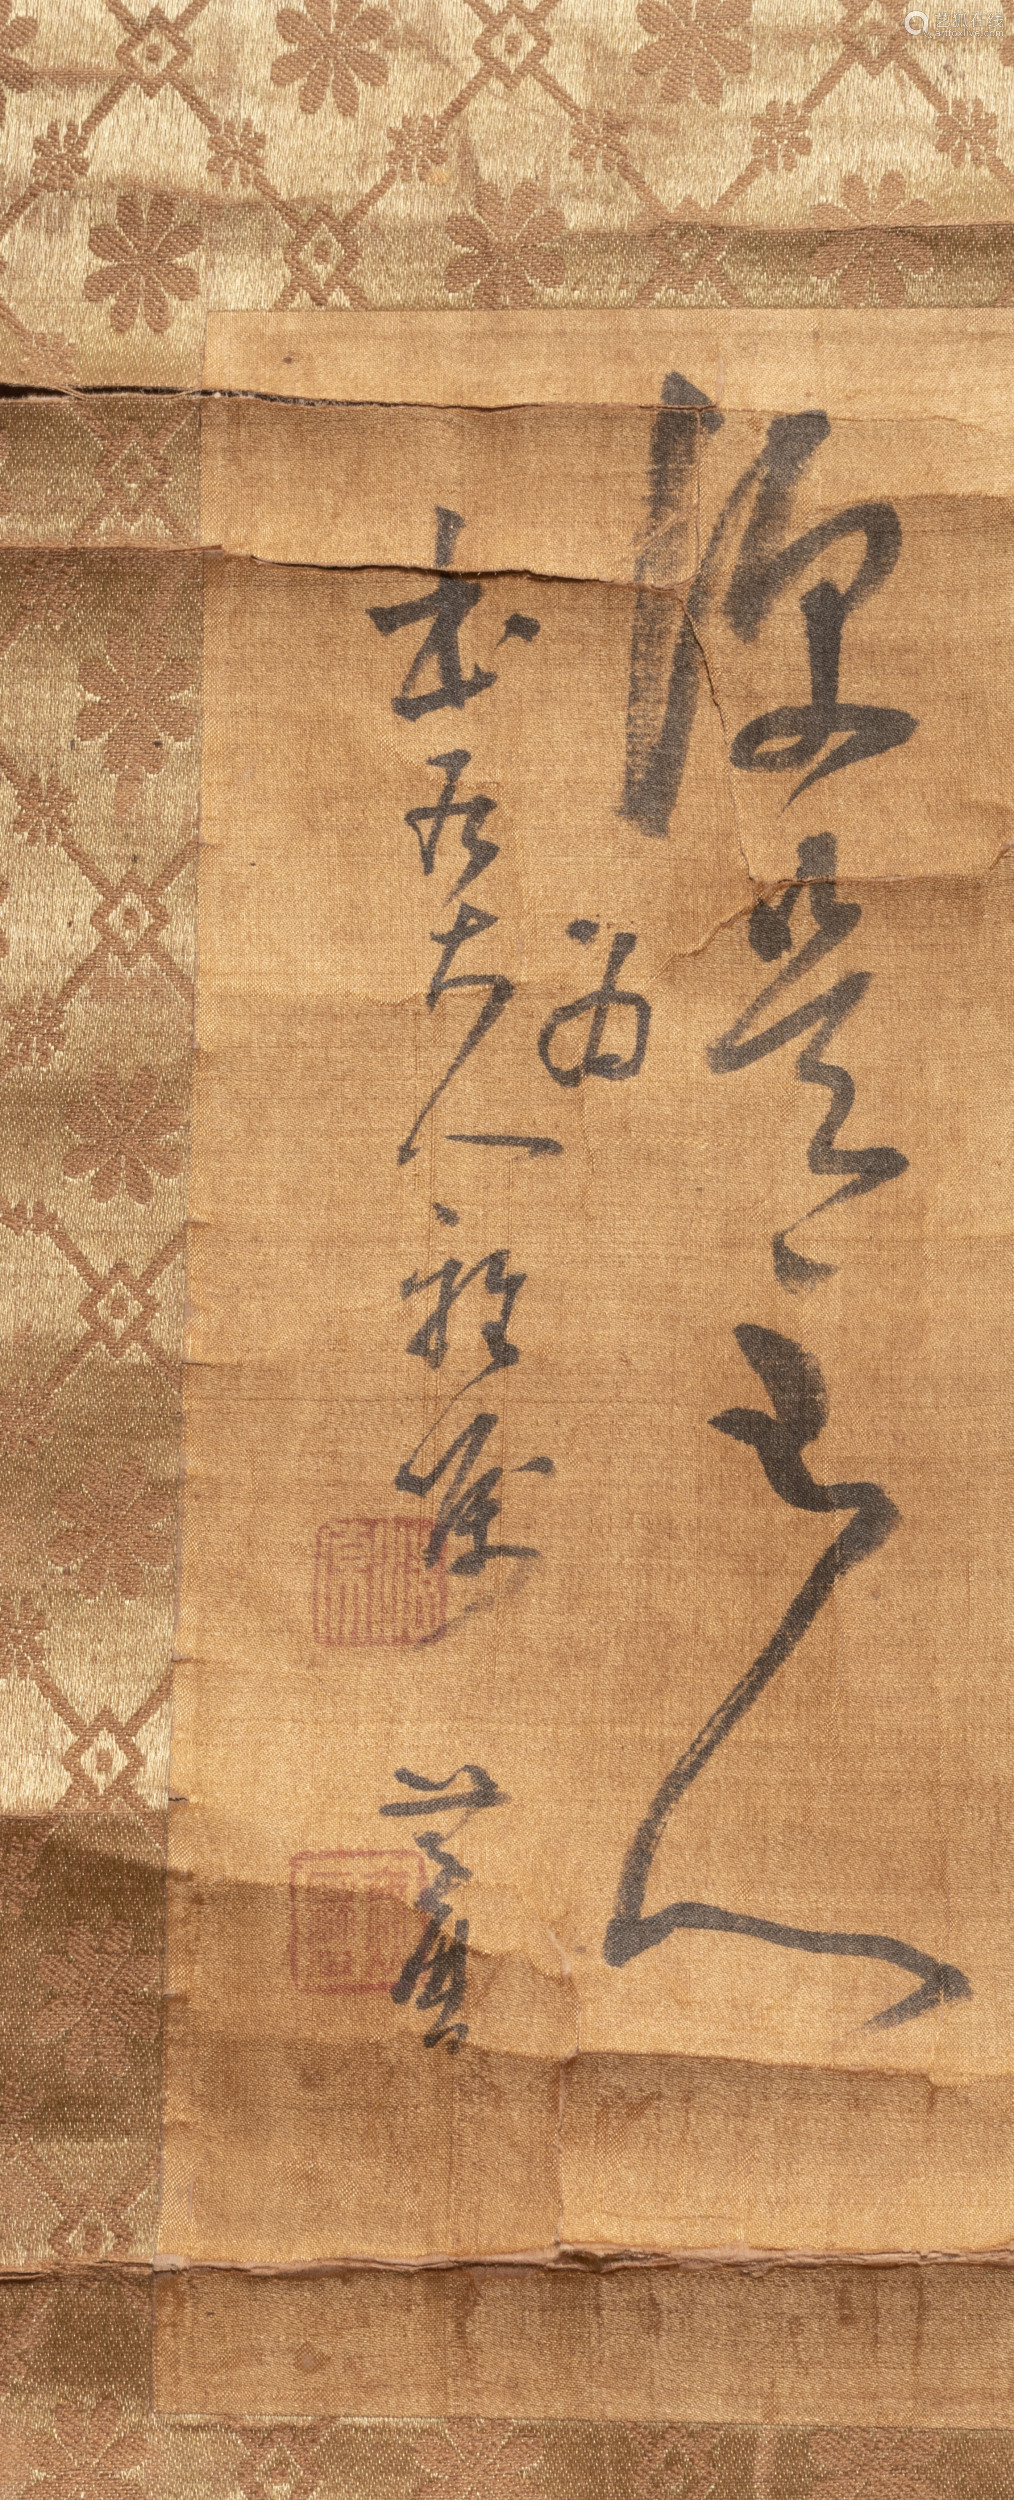 Vintage Chinese/Japanese Painting